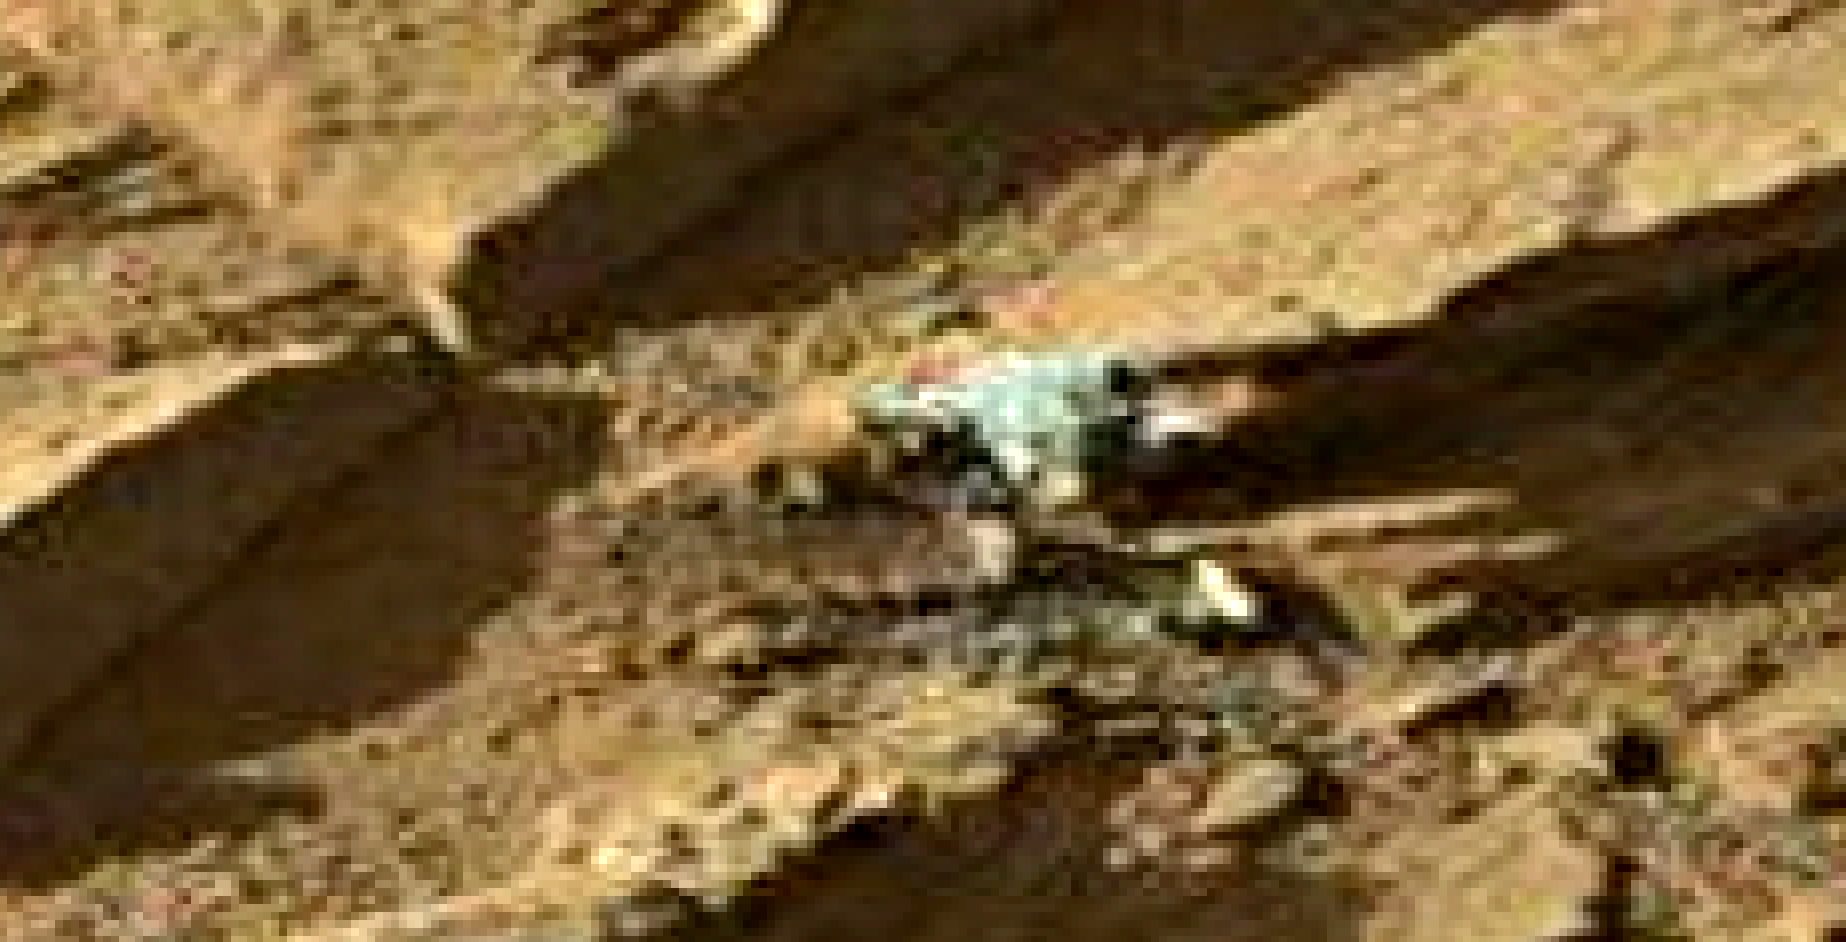 mars sol 1302 anomaly-artifacts 8b was life on mars